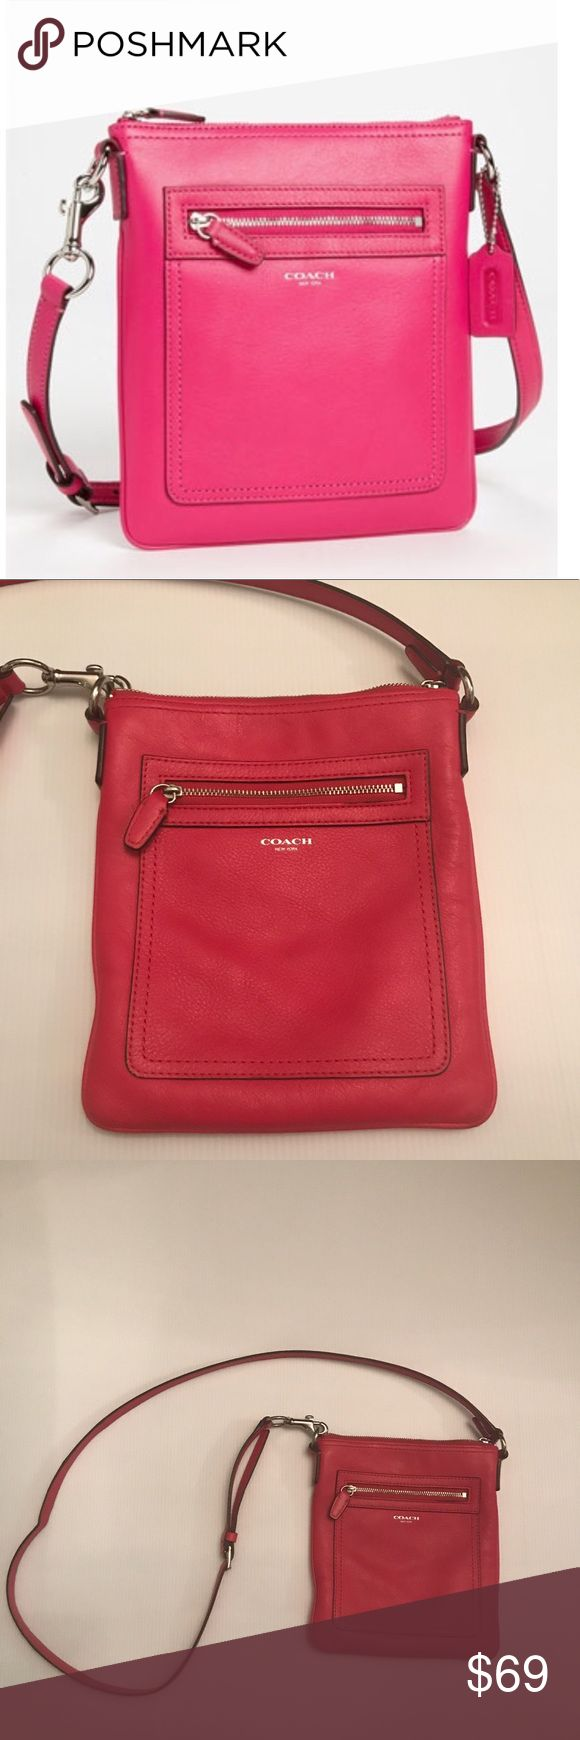 Pink Coach Legacy Leather Crossbody Pink leather crossbody. Has some small stain on the back side (seen in last 2 photos) otherwise in great condition. Coach Bags Crossbody Bags